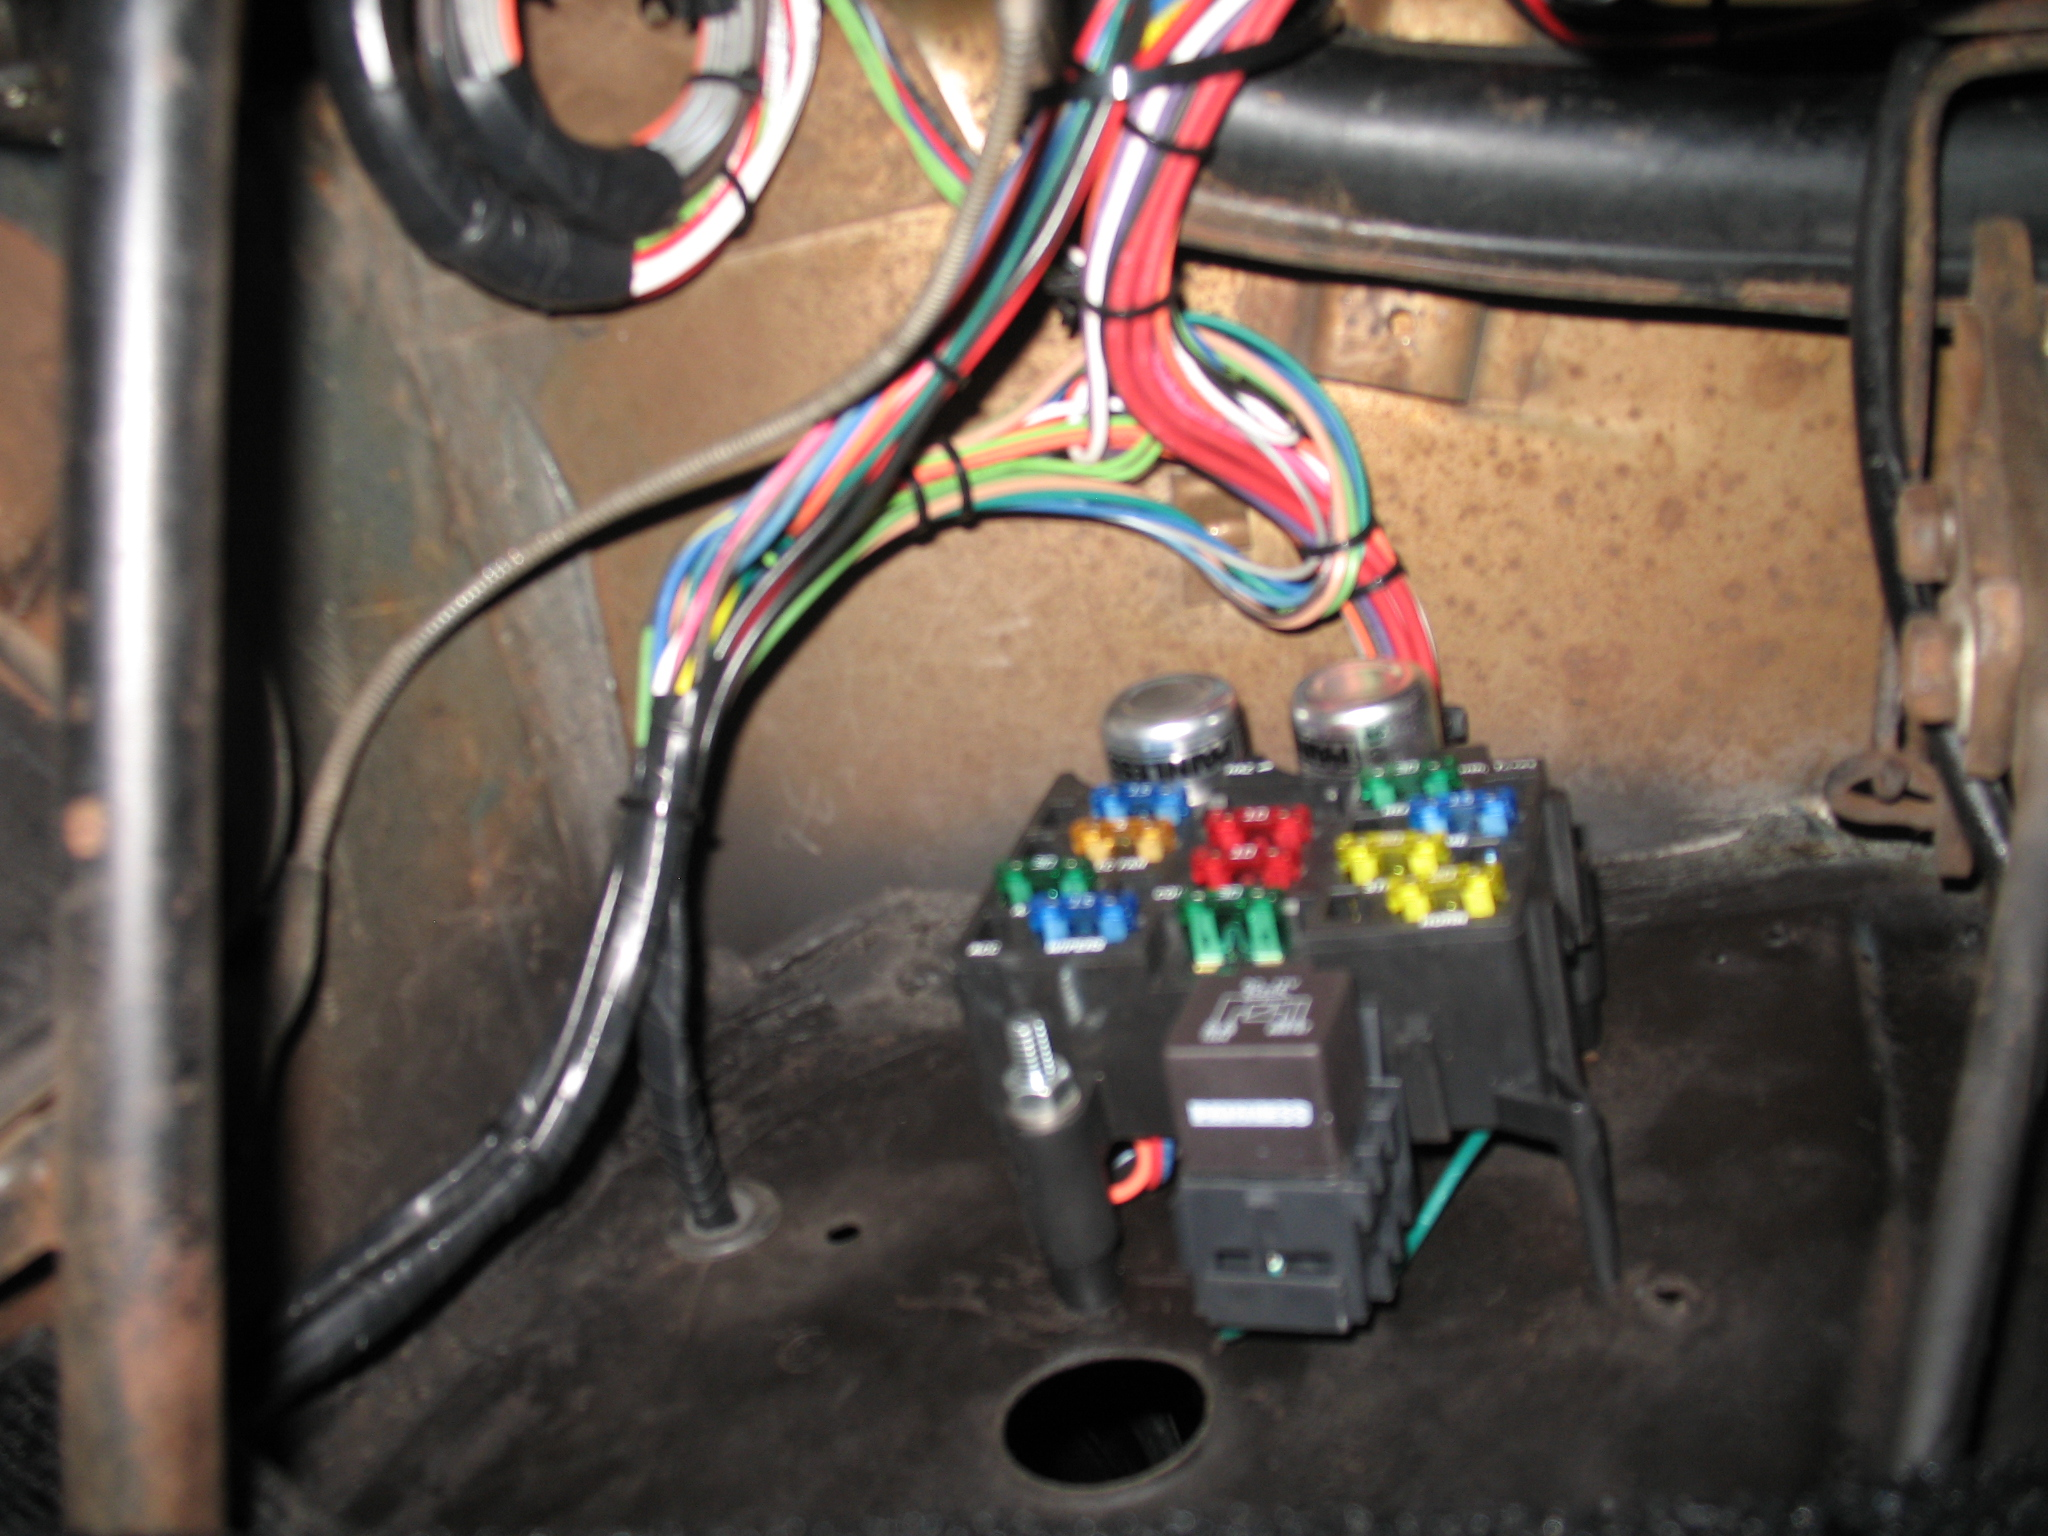 Street Rod Wiring Harness 25 Diagram Images Hot Img 4301 605 Blown Cubes 1955 Chevrolet Duncans Speed Custom At Cita